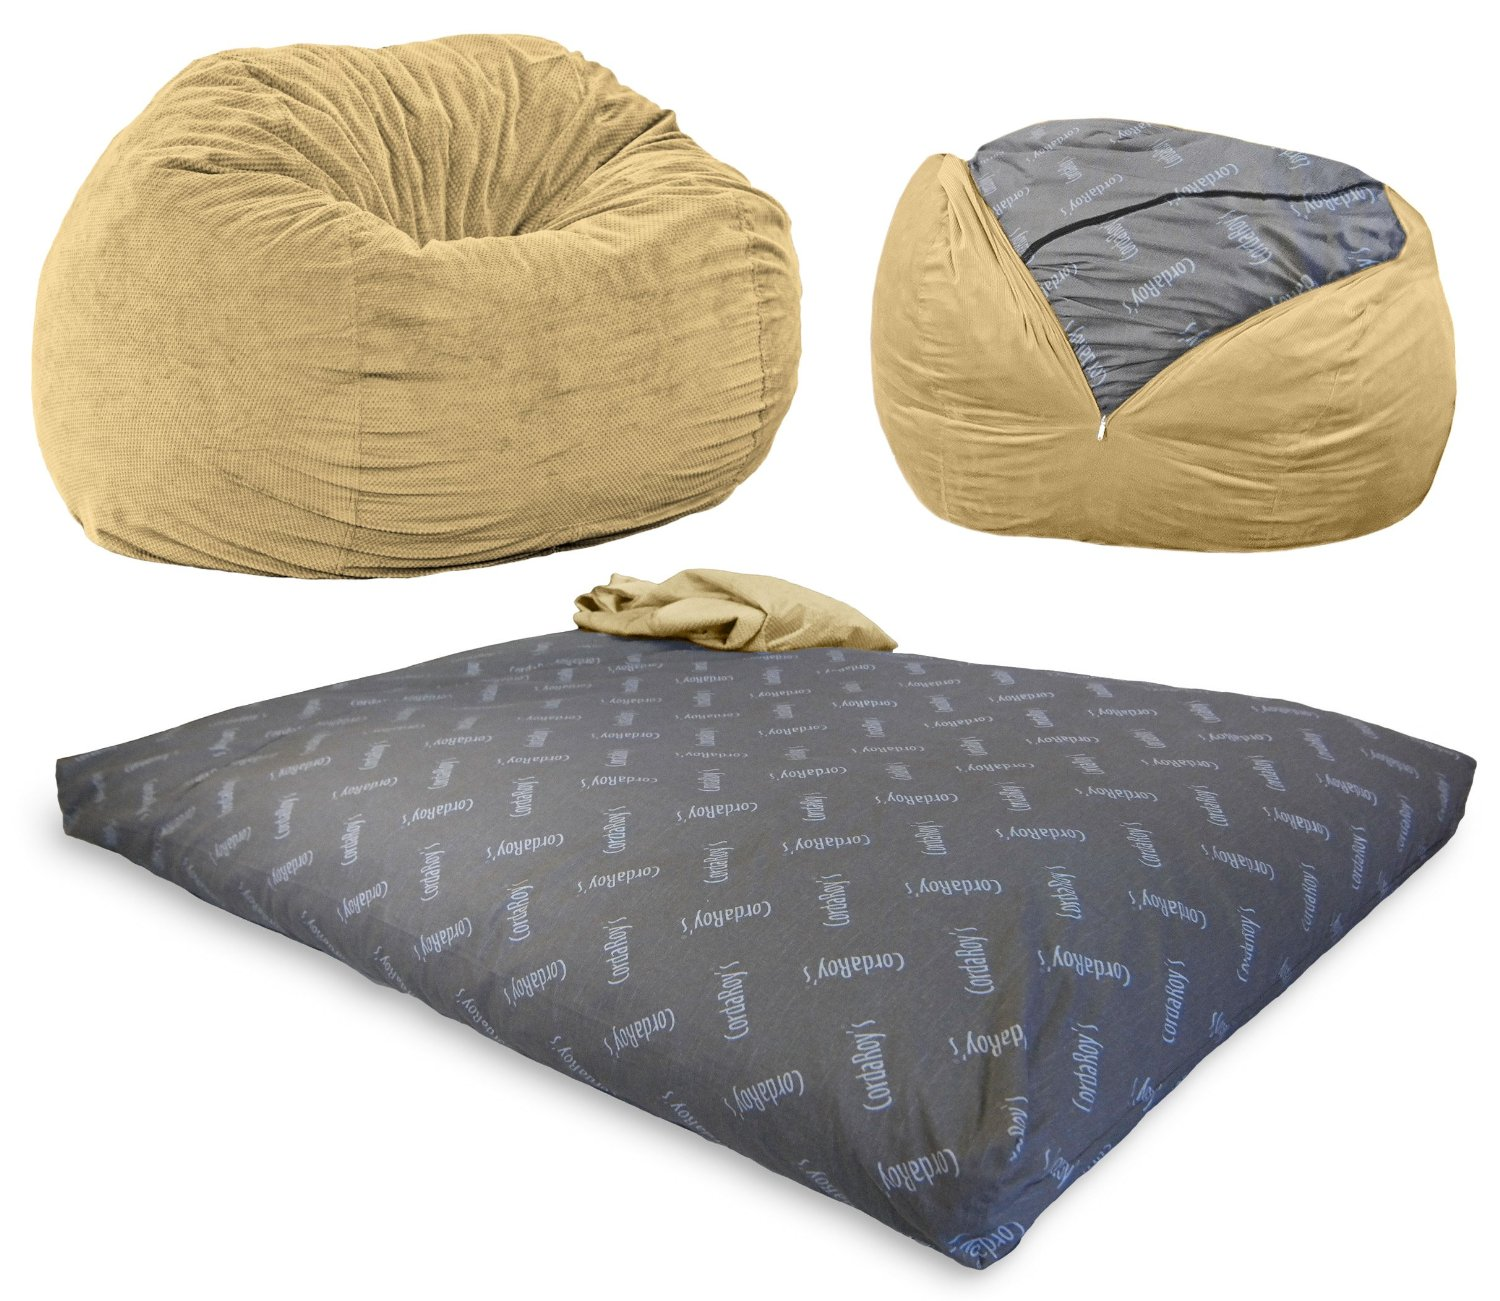 two person bean bag chair menards outside cushions convertible that turns into mattress